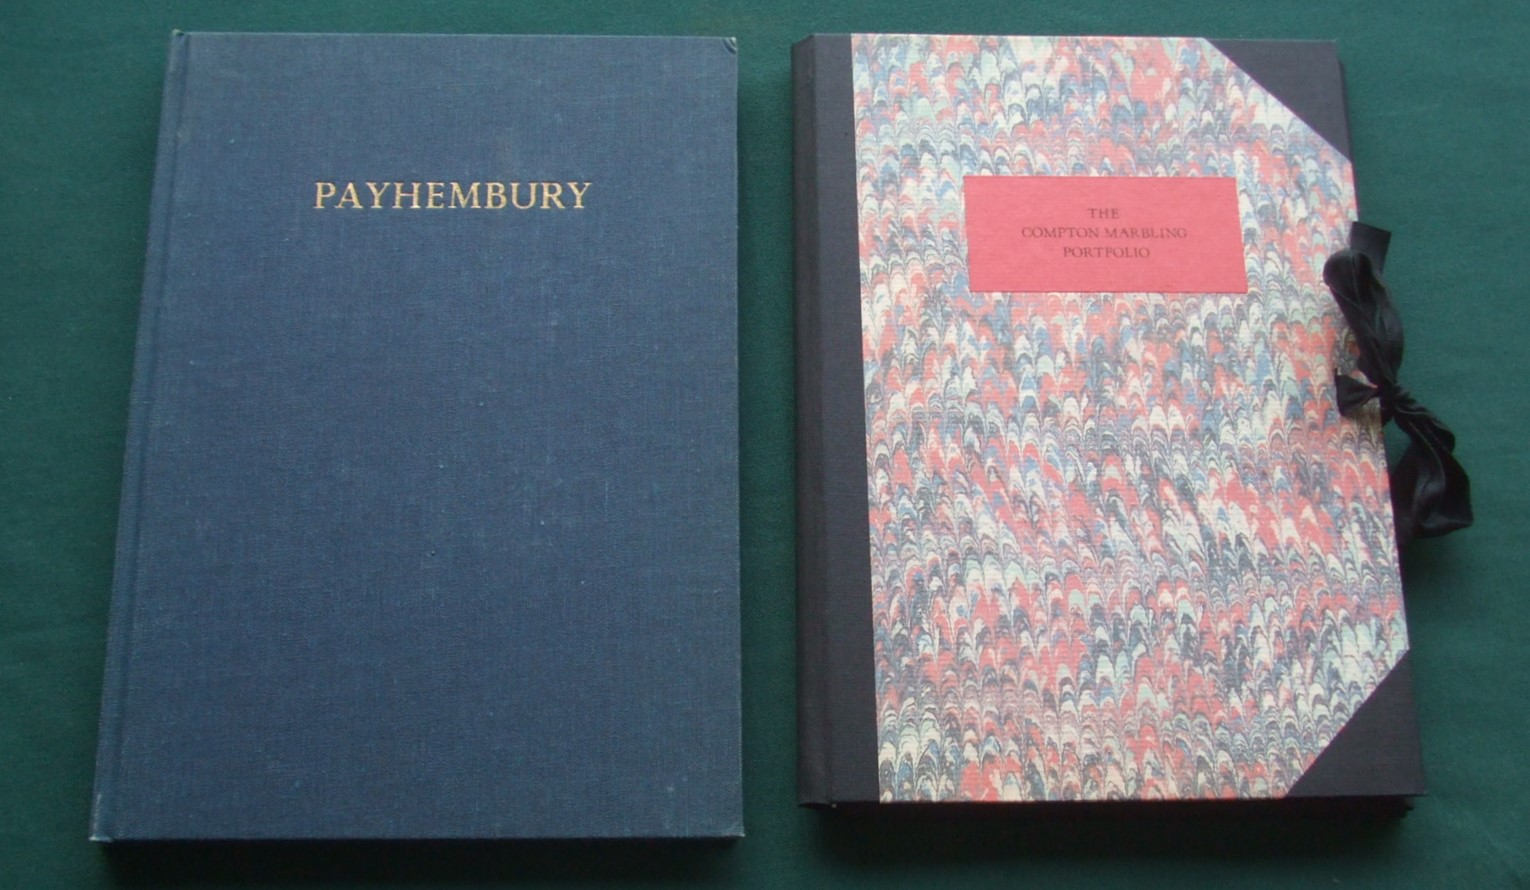 Image for Payhembury Marbled Papers Sampler. [ Together with: The Compton Marbling Portfolio of Patterns ]